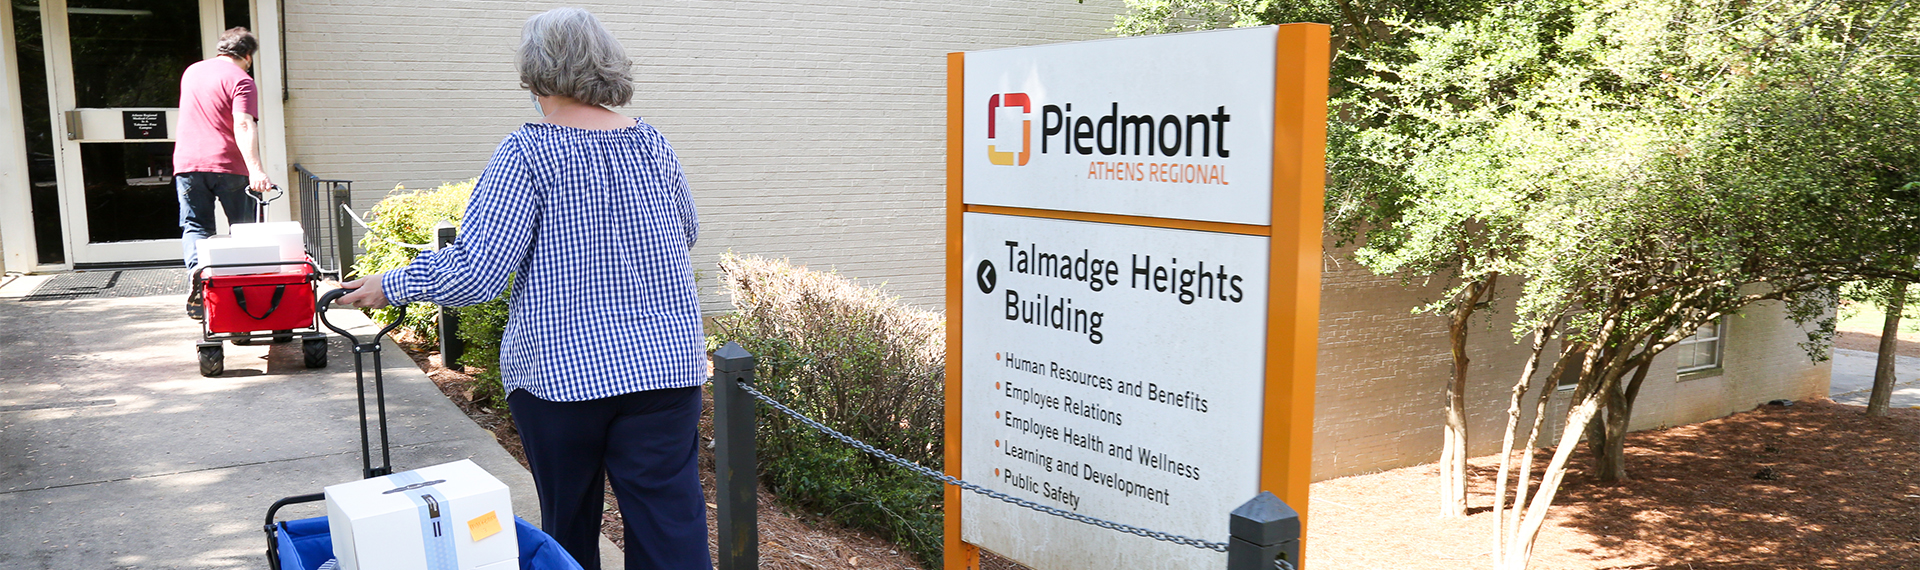 Food delivery to Piedmont Athens Regional